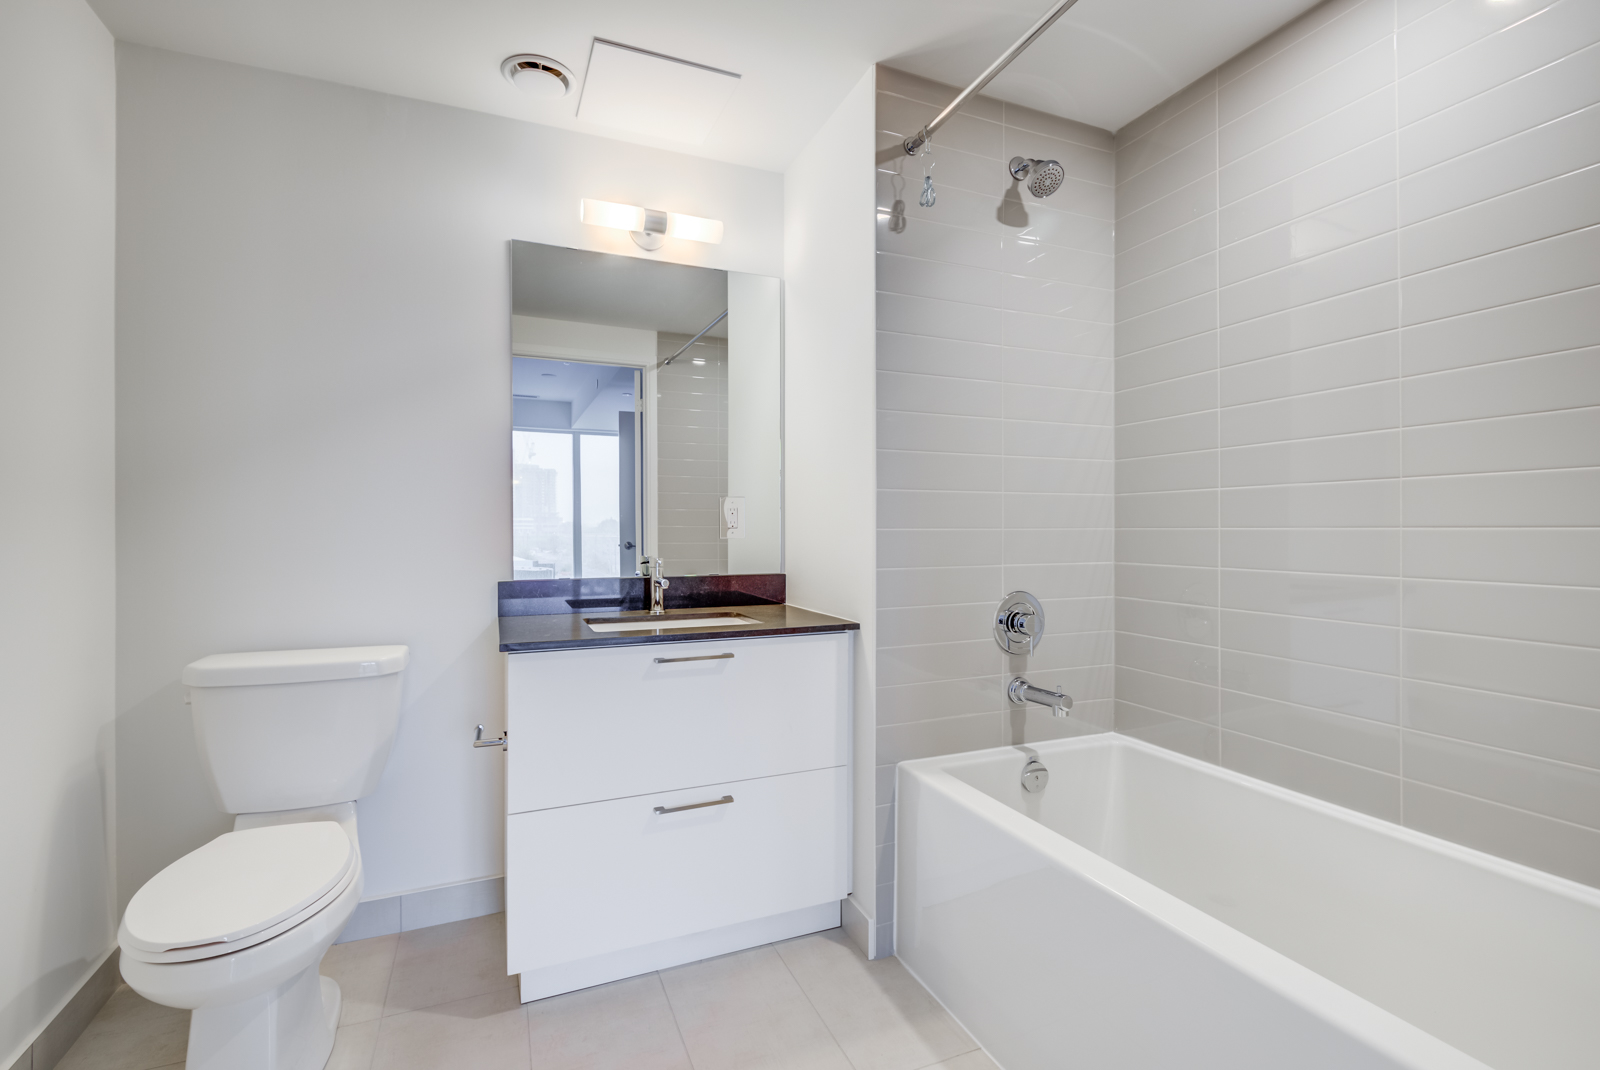 Master bath with tub, shower, vanity, and gray and white colours.